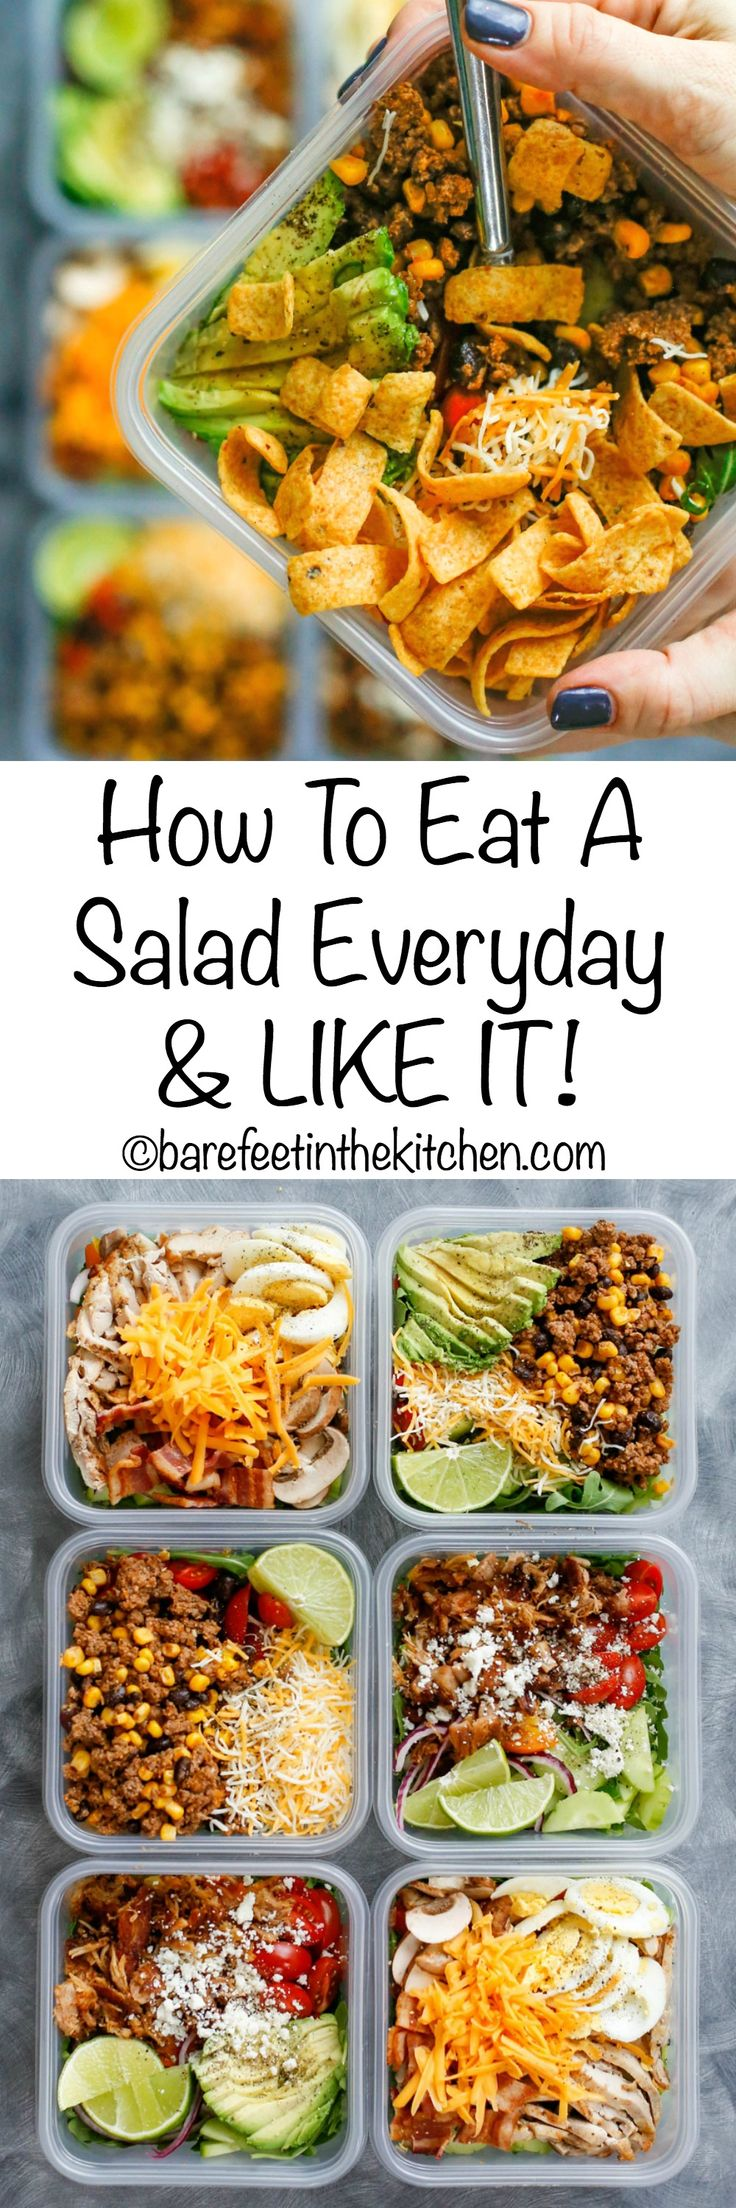 This is the perfect pin for me, because I find salad so boring. Anyone agree?? If so, check out these recipes and re-pin them!